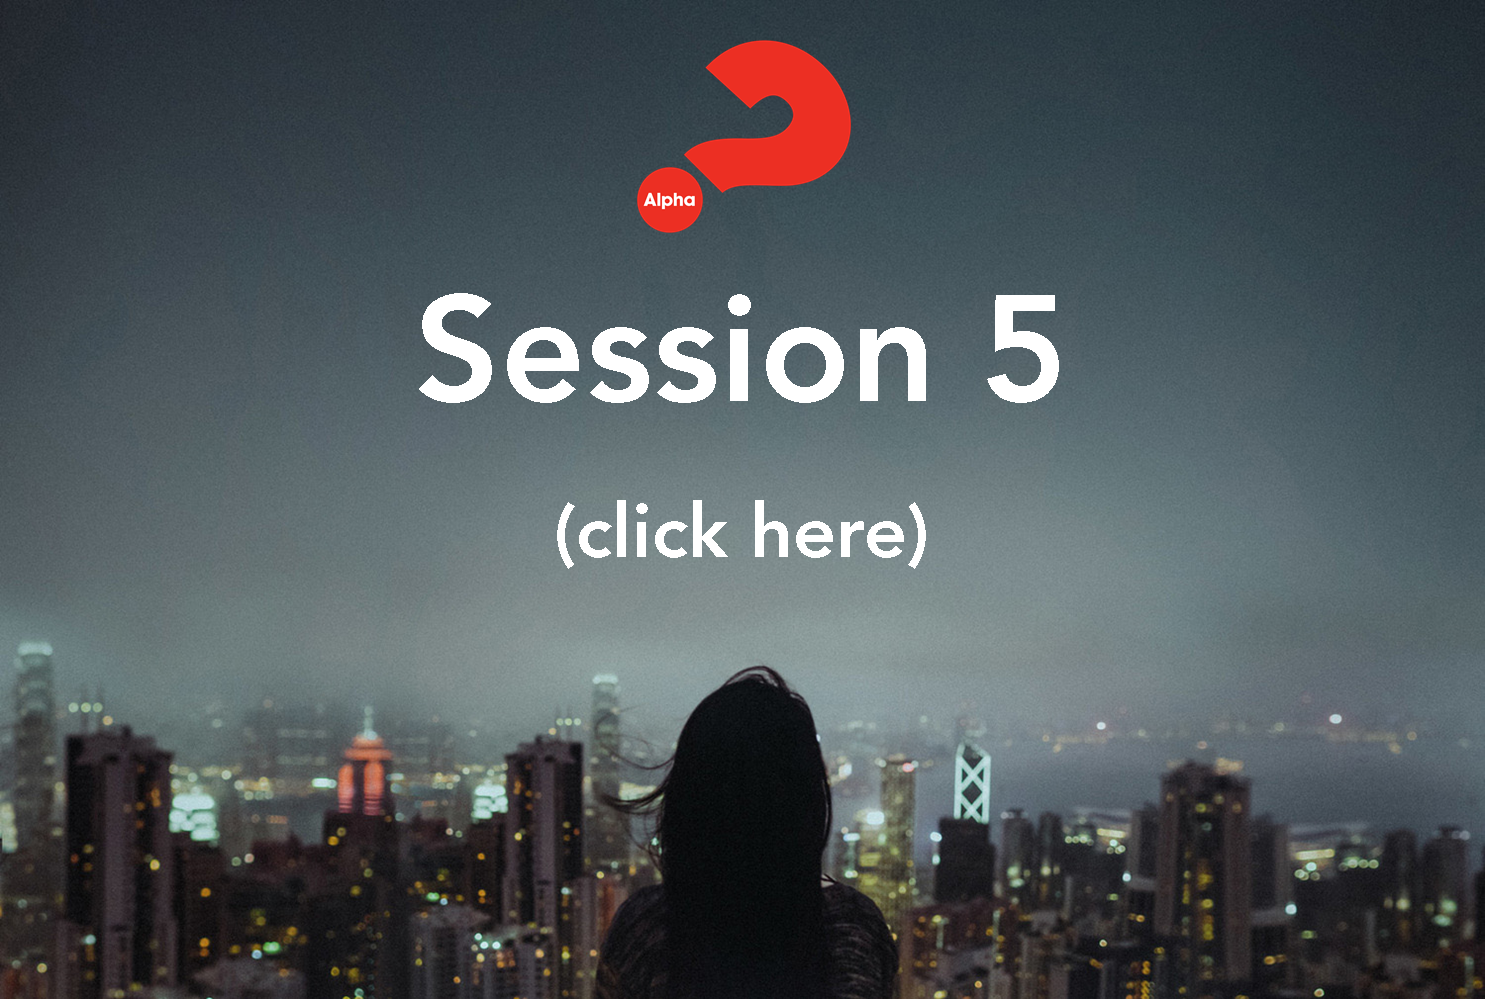 Session 5 WB.png